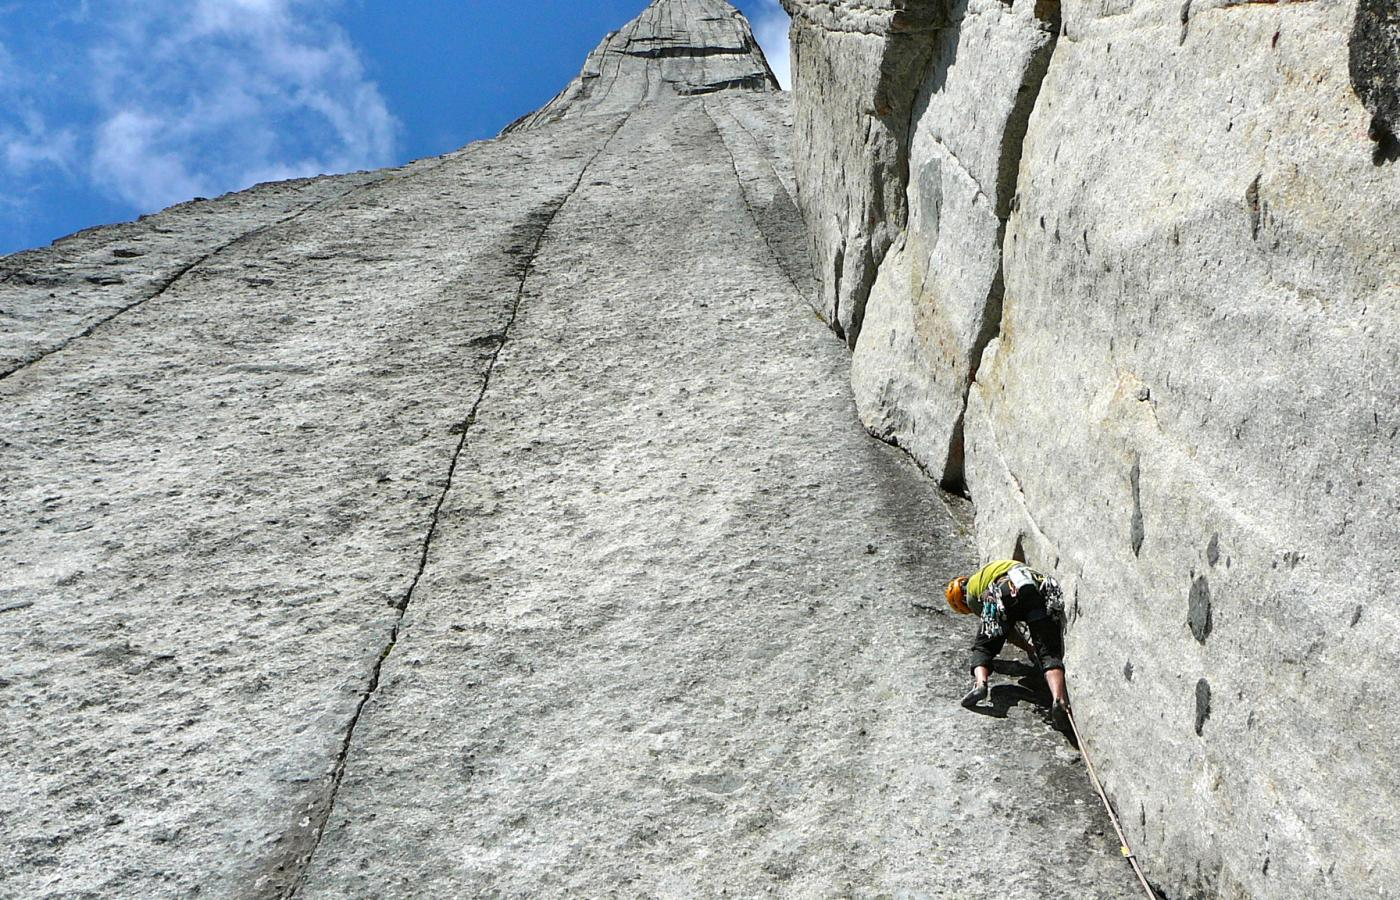 A sheer-sided cliff traversed by only the most skilled mountain climbers